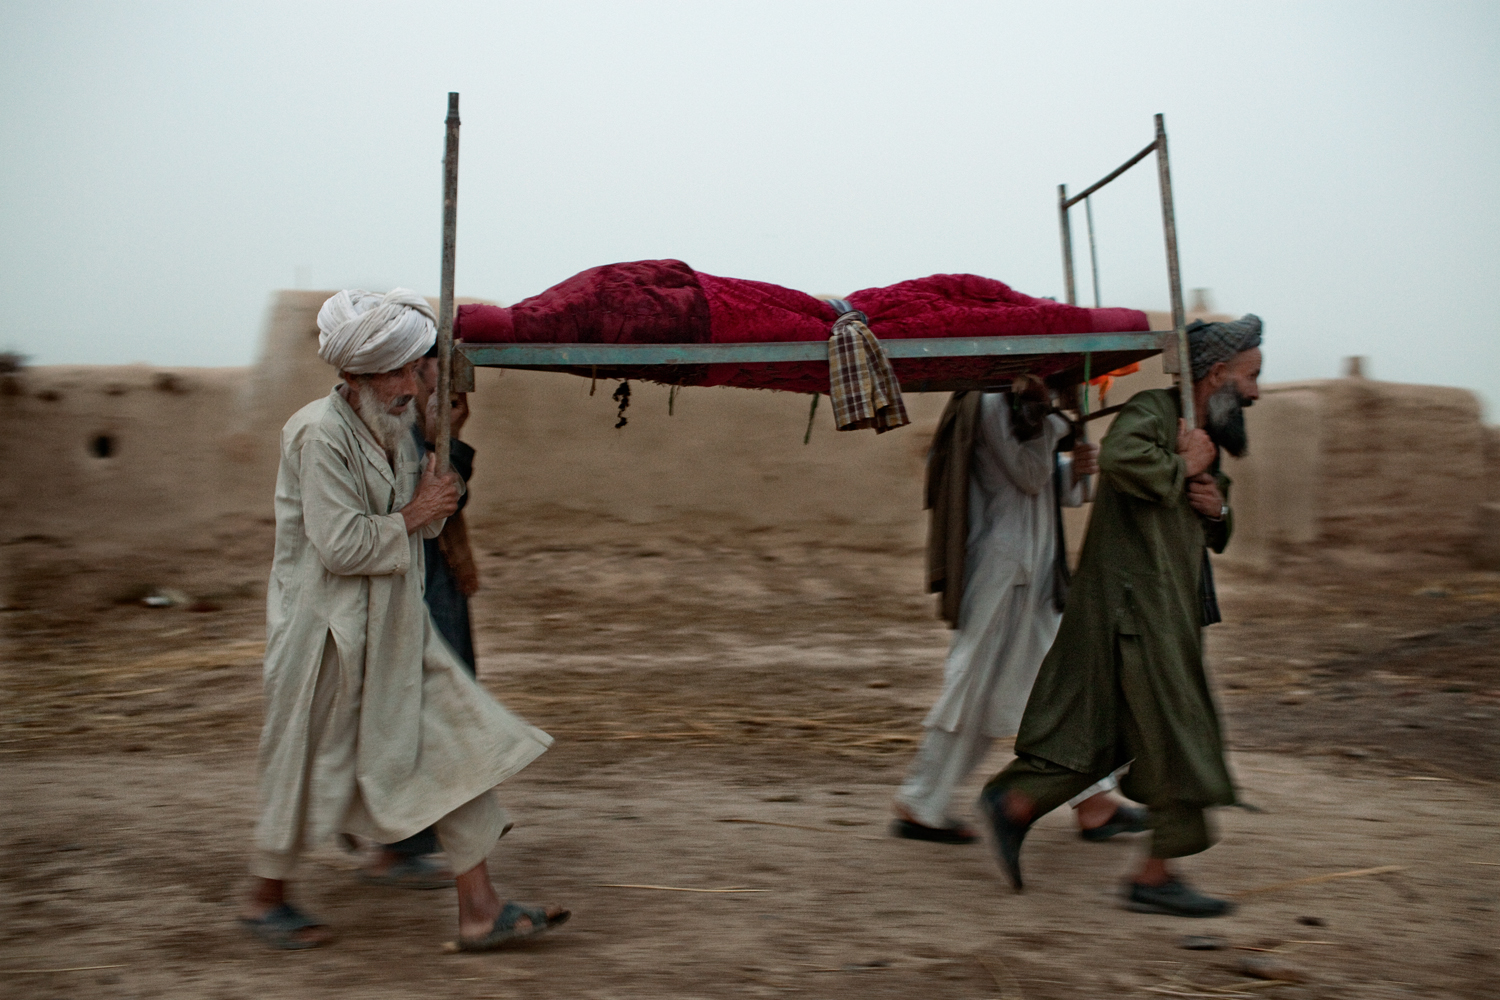 Family members of Gulmakay, a fourteen-year old Afghan girl killed by a U.S. Marines mortar strike, carry her body after presenting it to Marines in Abdullah Jan Village, Marja District, Helmand Province, Afghanistan.